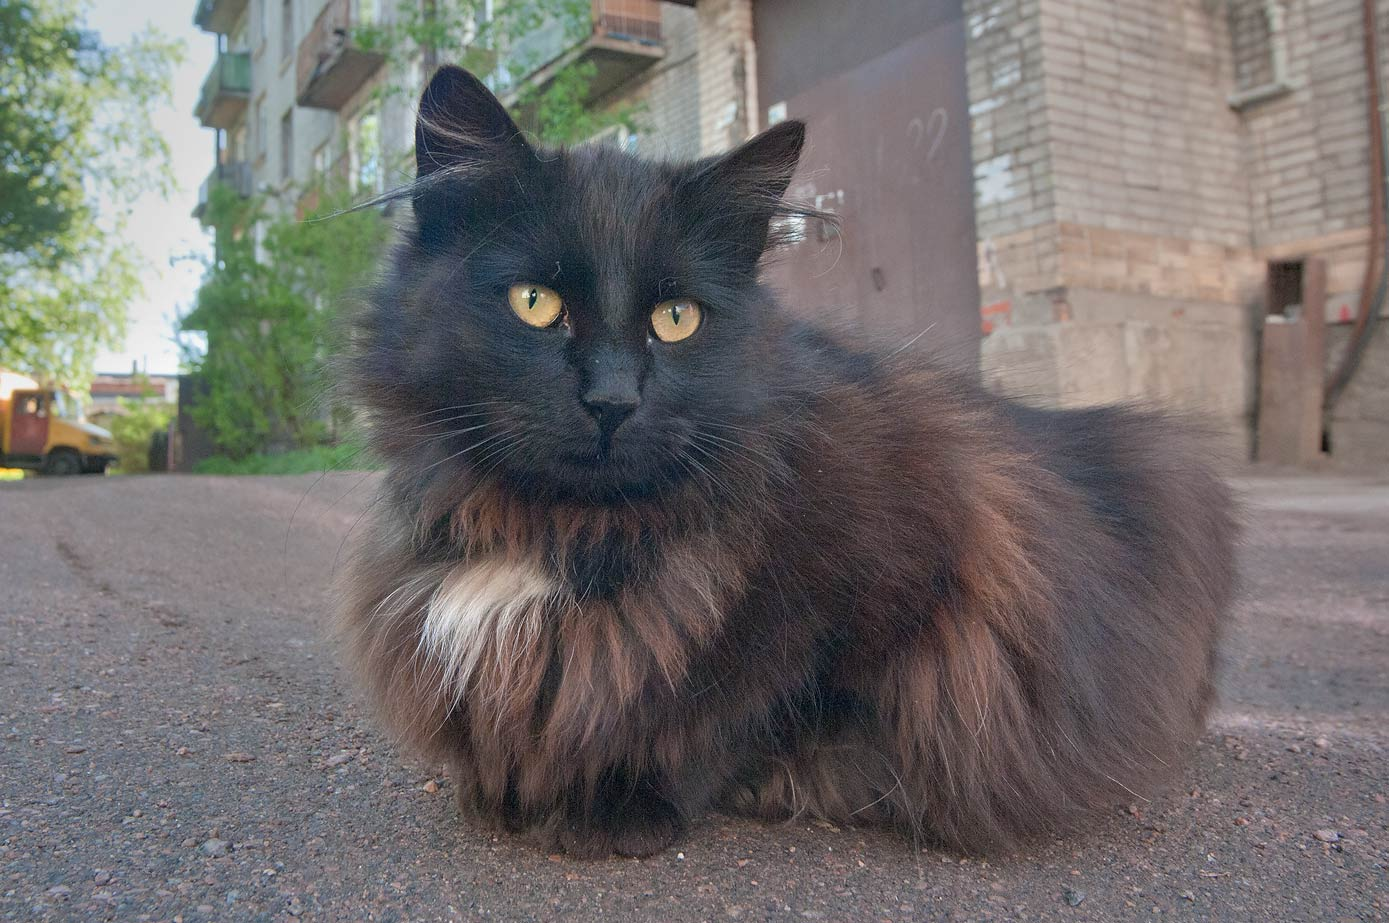 Tortoiseshell (black with chocolate) cat in Old City. Vyborg, Russia